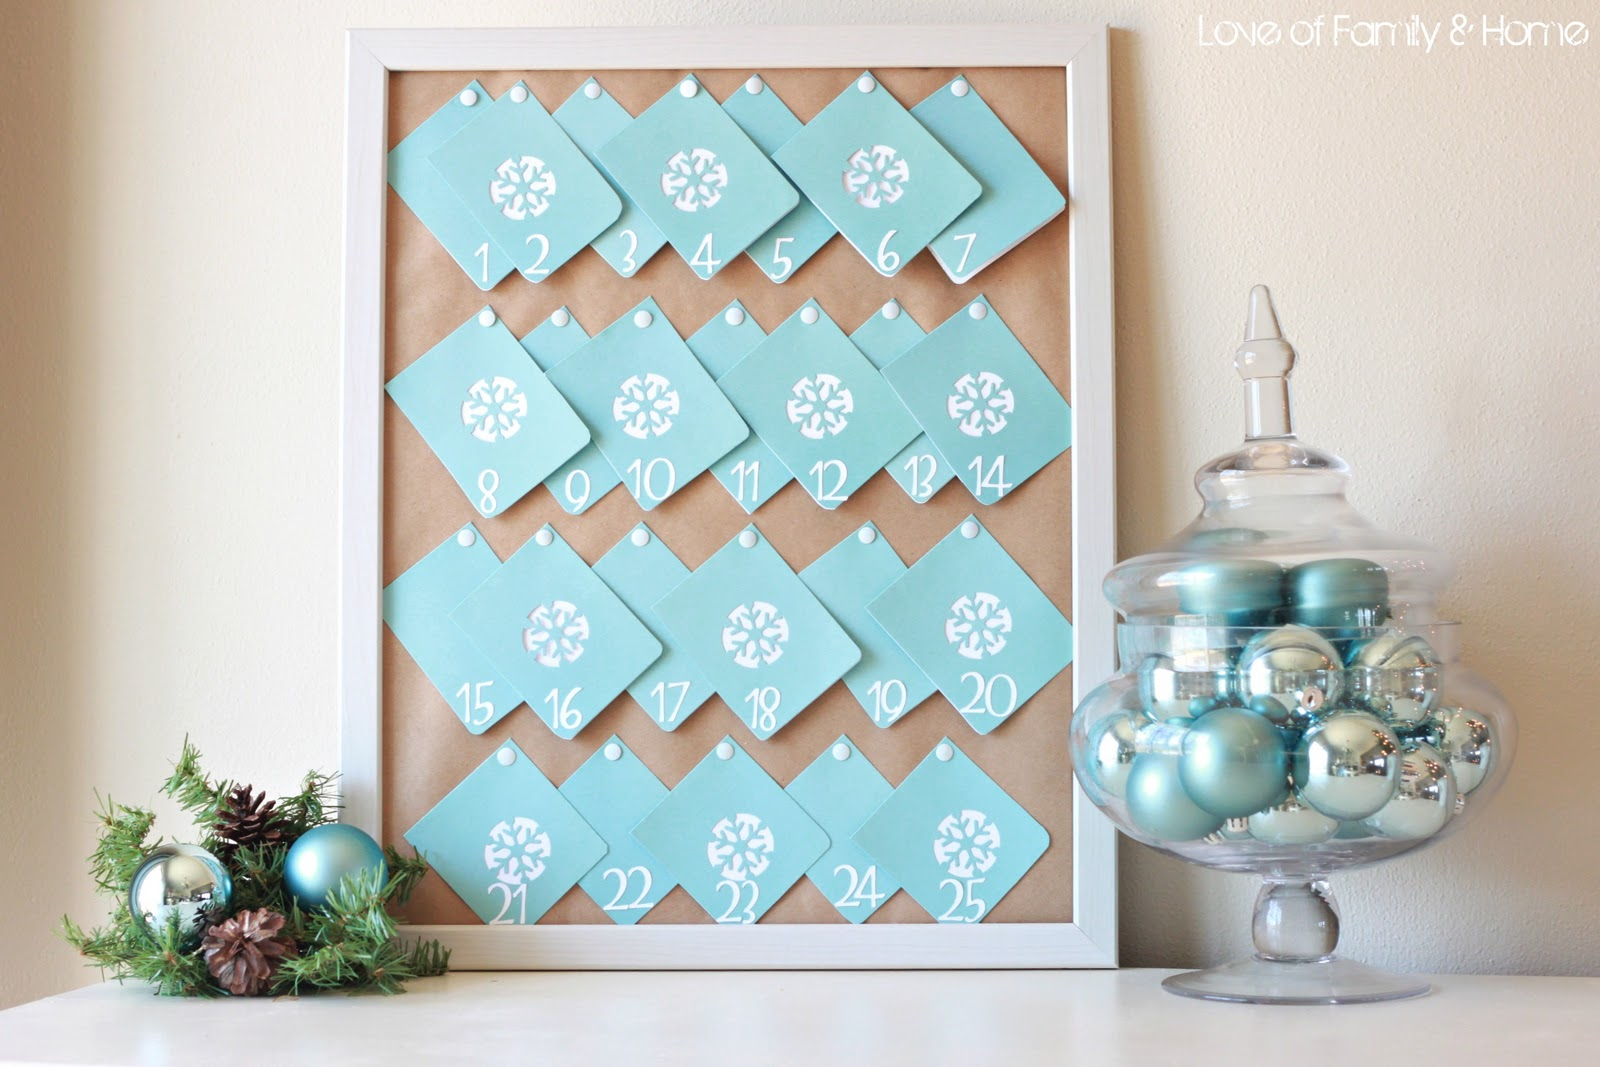 Diy advent calendar archives love of family home for Diy christmas advent calendar ideas